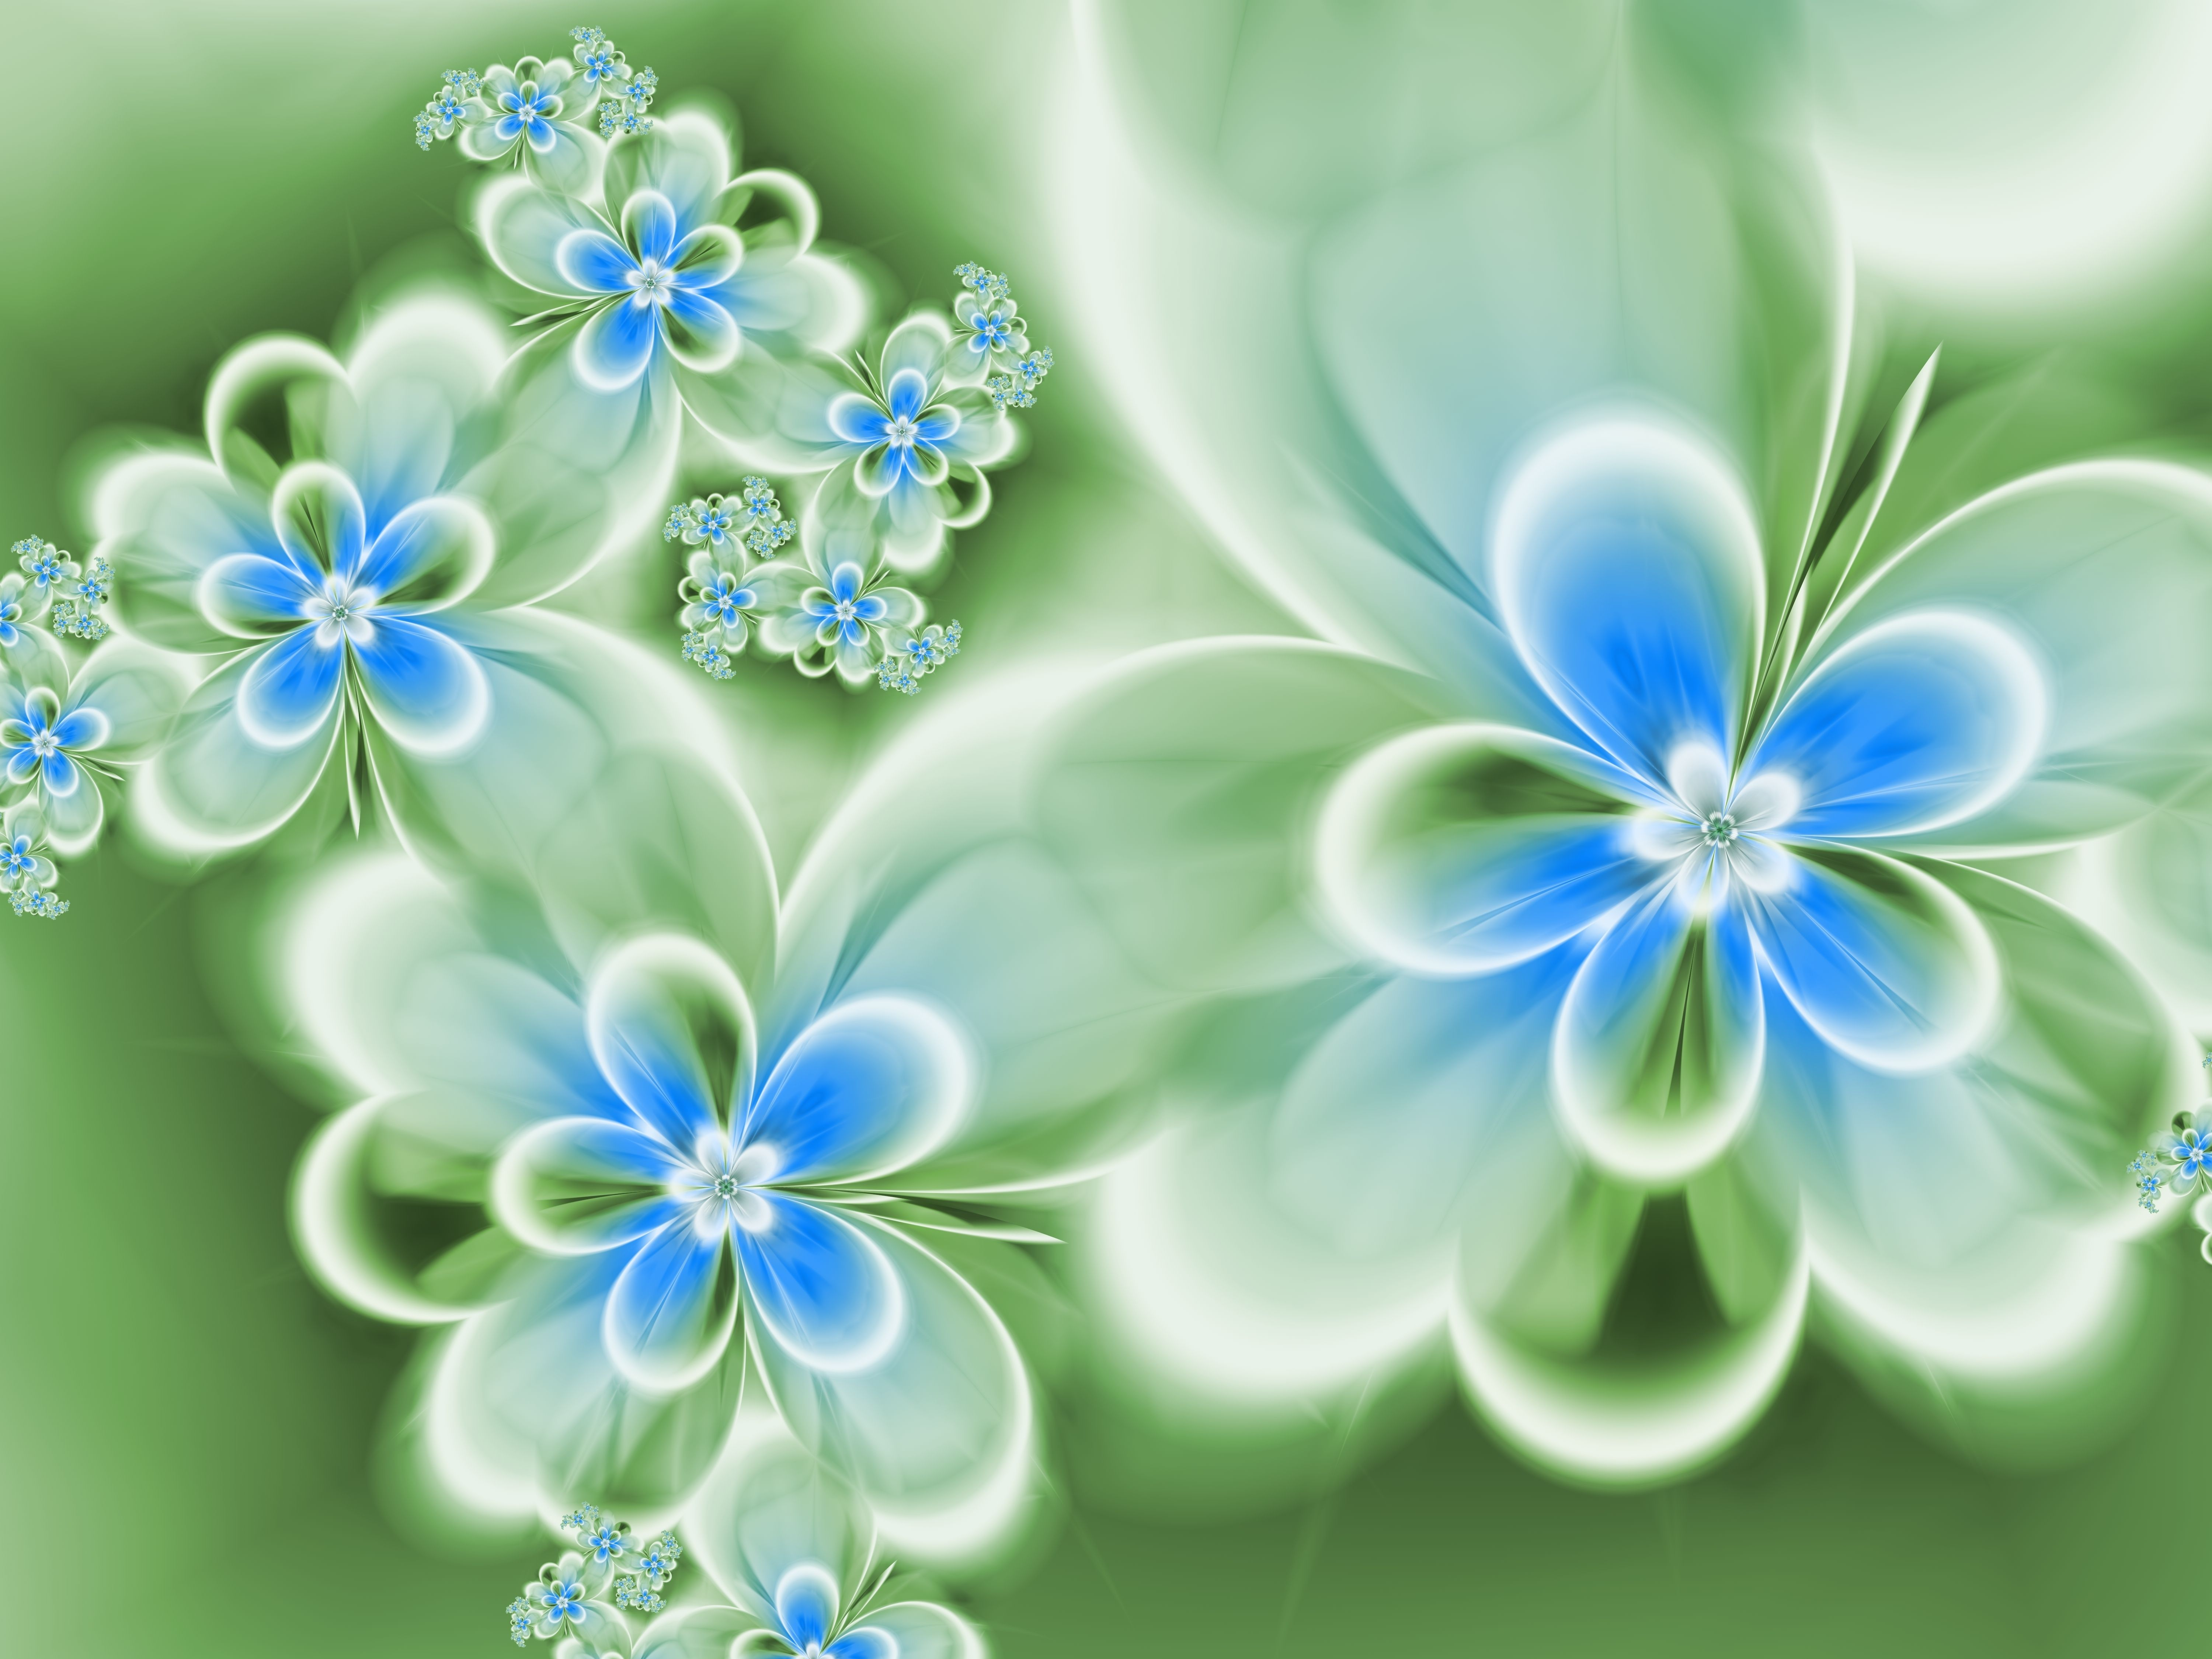 Abstract Flowers 5k Retina Ultra HD Wallpaper And Background Image